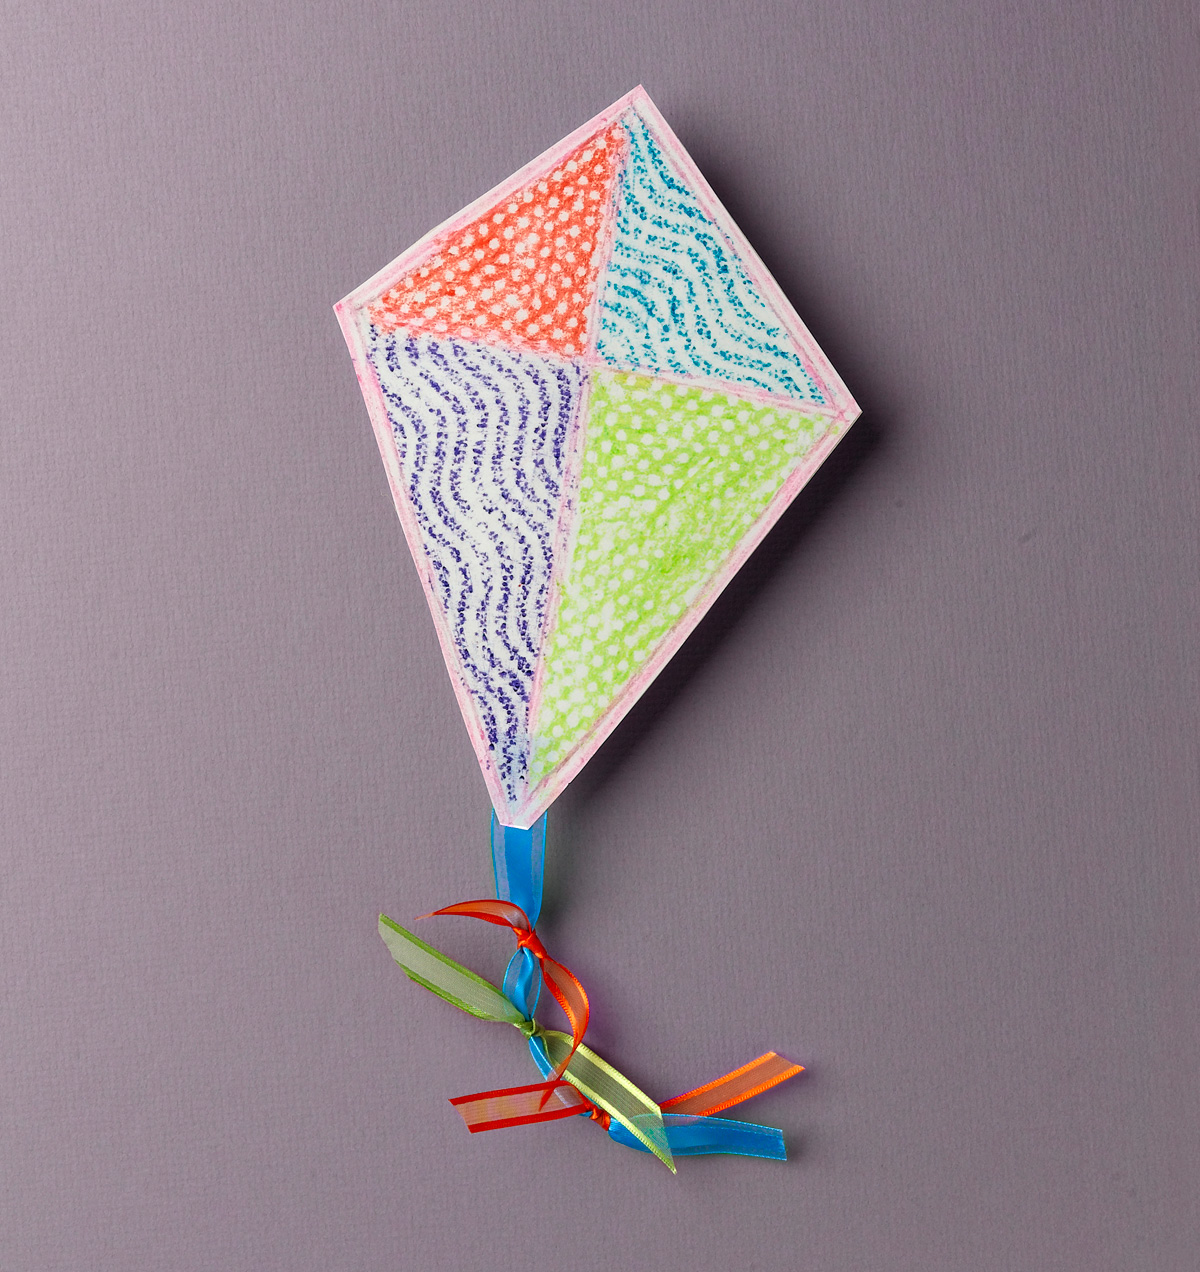 Texture Rubbing Mini Kite Crayola Com